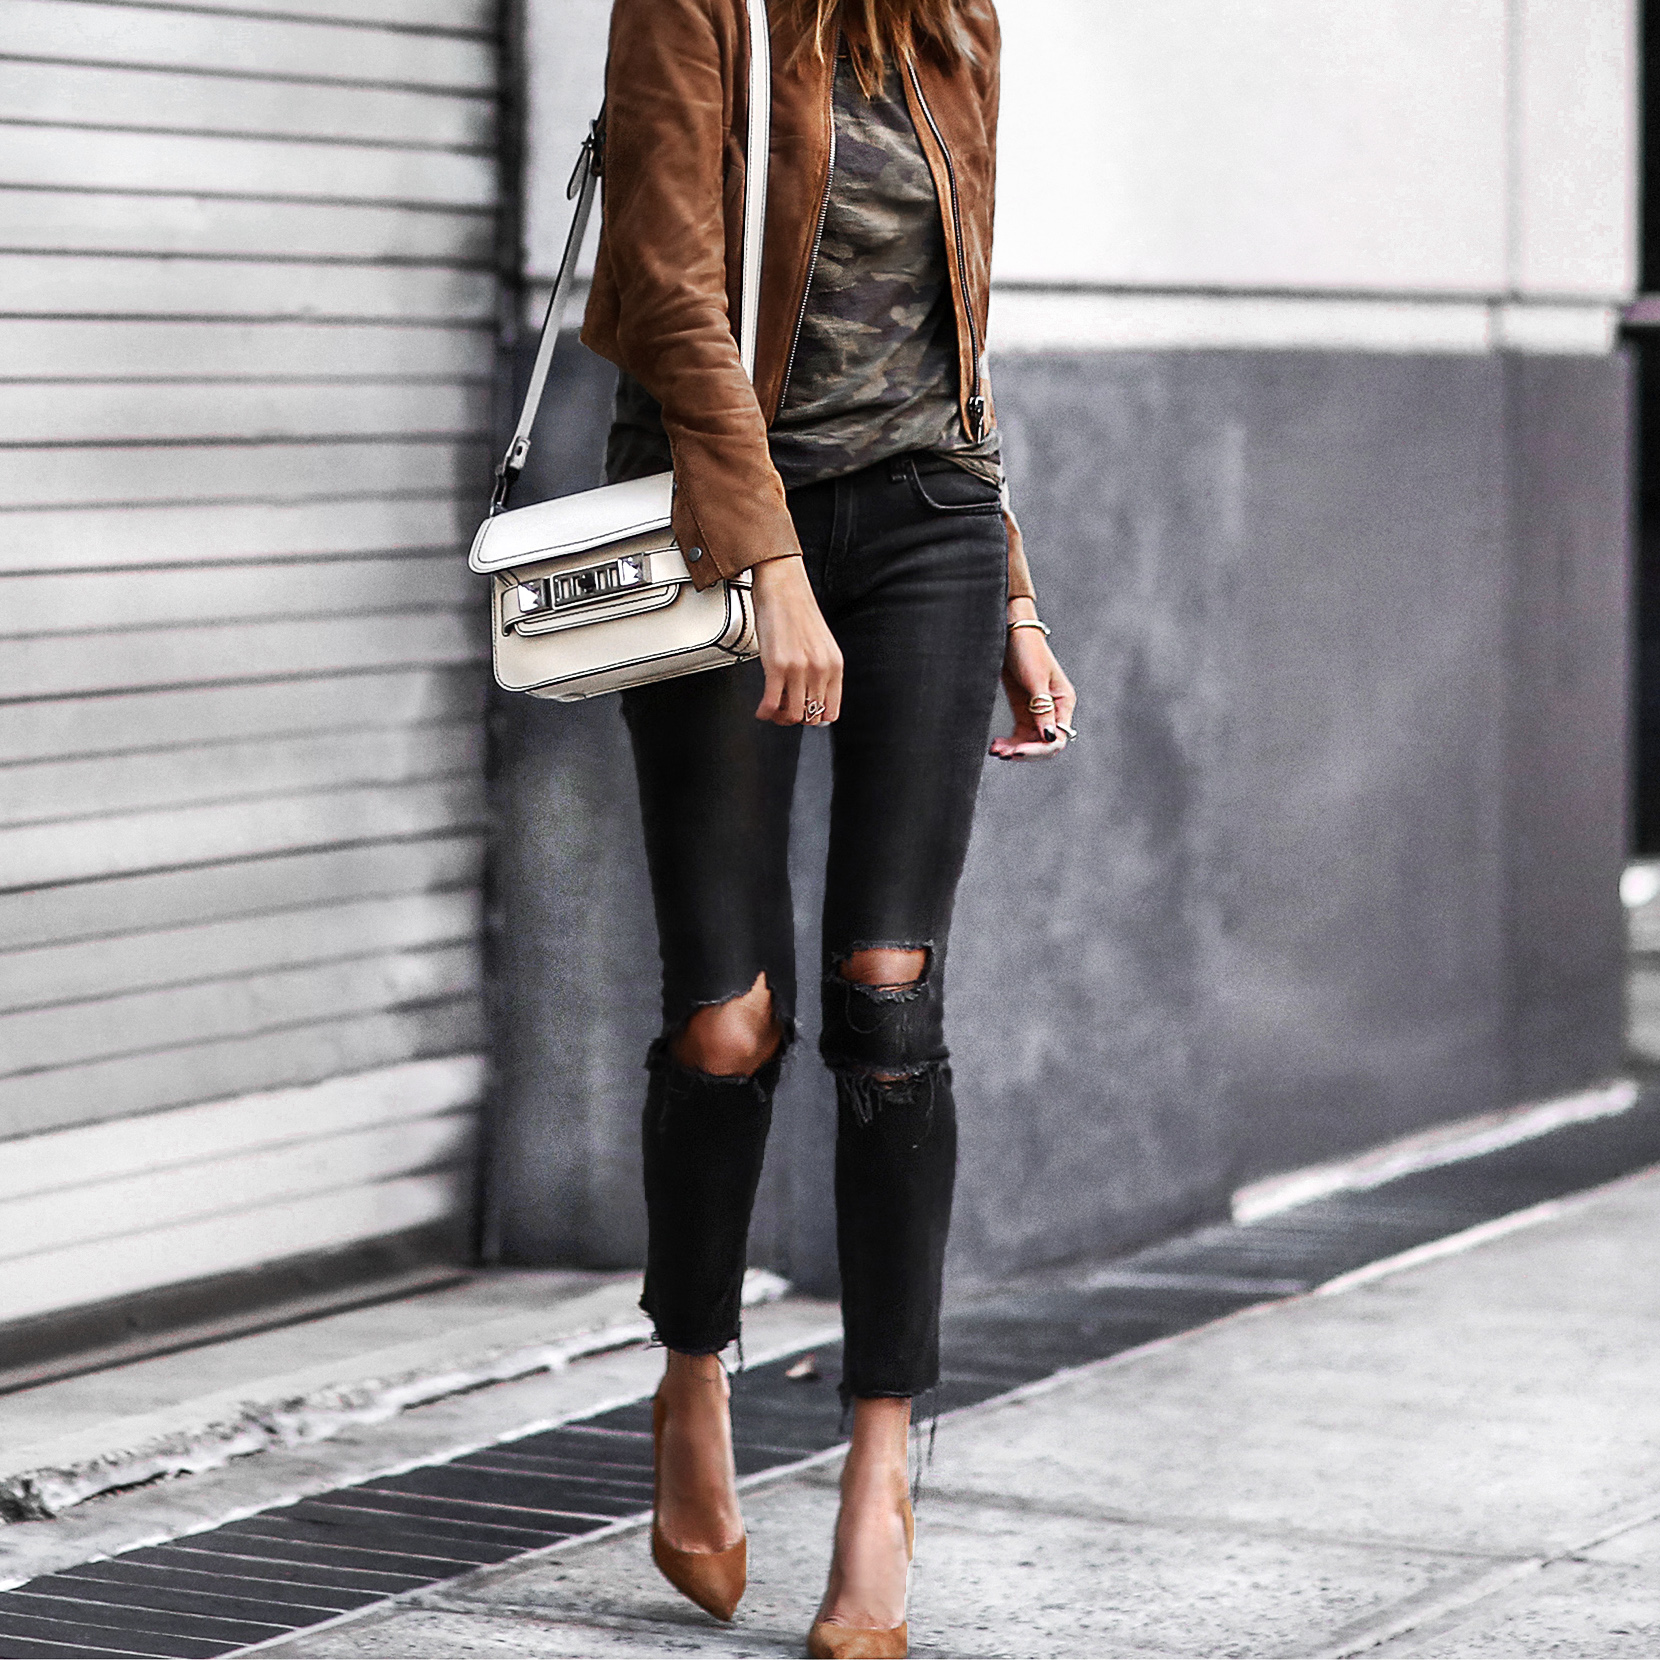 camo tee, camel suede jacket, ripped skinny jeans, camel suede pumps